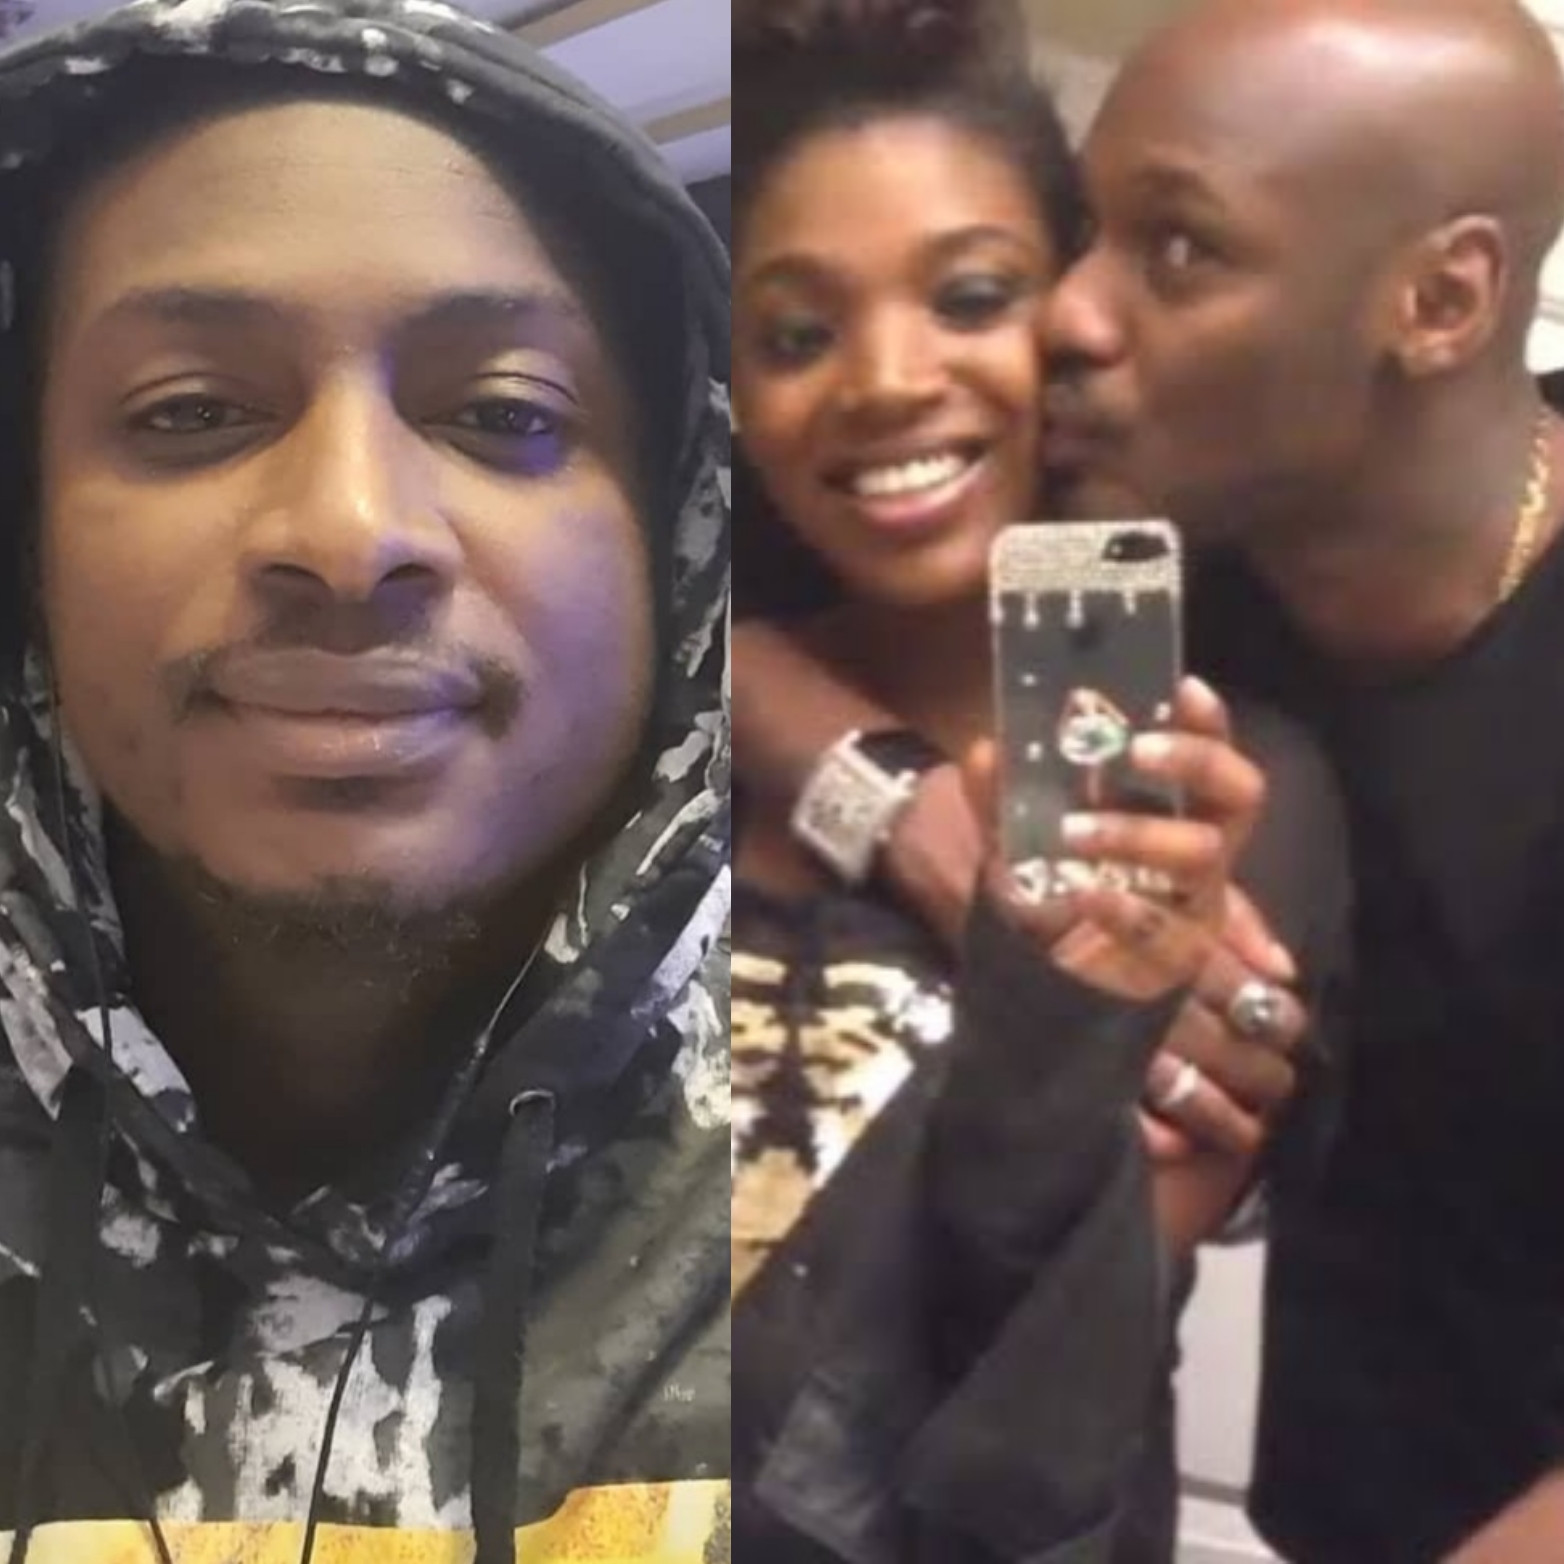 """61316b9f8ae2d - """"Inno is dying slowly"""" Tuface Idibia's brother, Charles, hits back at Annie Idibia then accuses her mother of being involvedin """"Juju"""""""